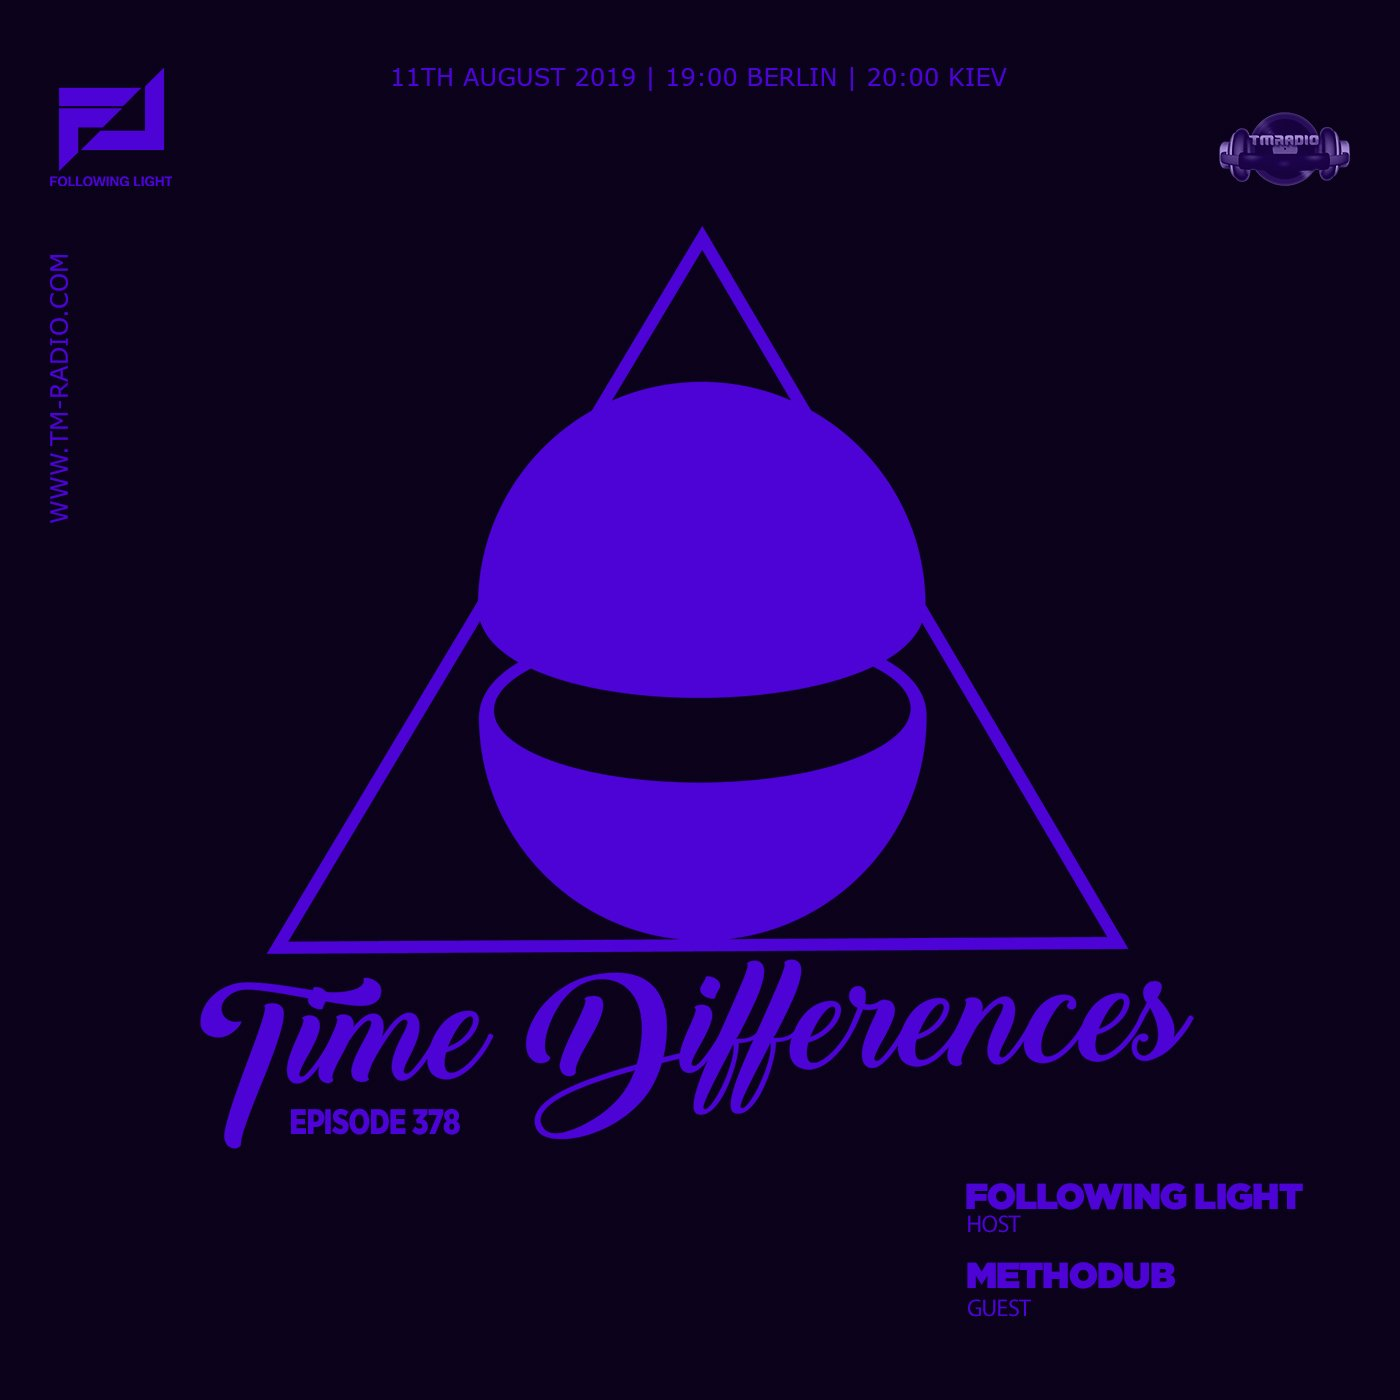 Time Differences :: Episode 378, with host Following Light and guest Methodub (aired on August 11th) banner logo